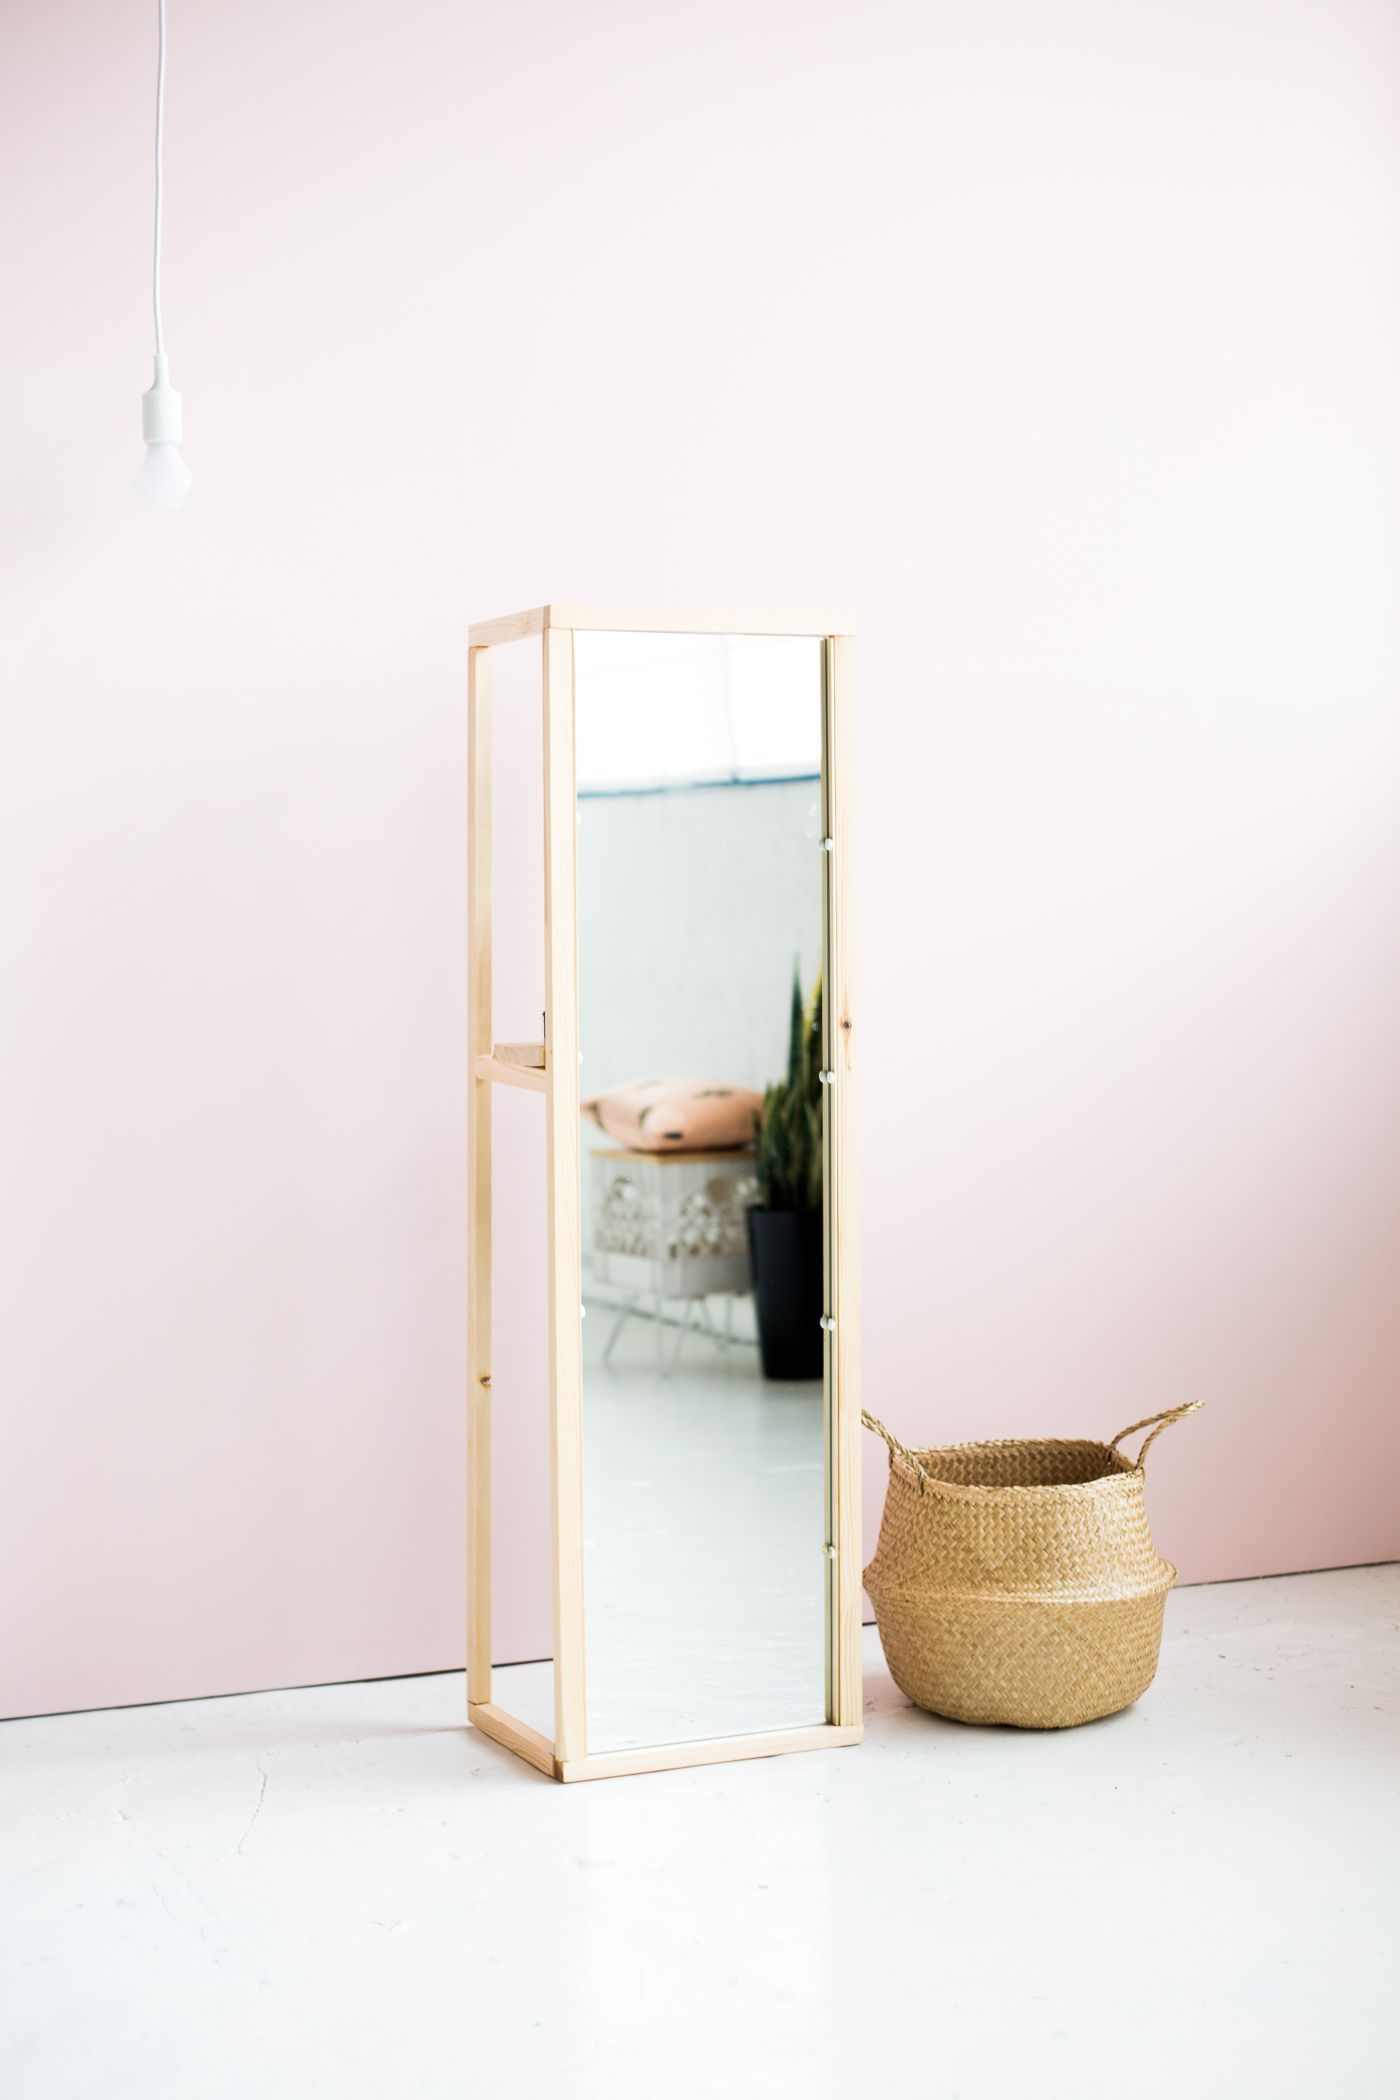 DIY Wooden Floor Standing Mirror with Useful Shelf | Floor standing ...